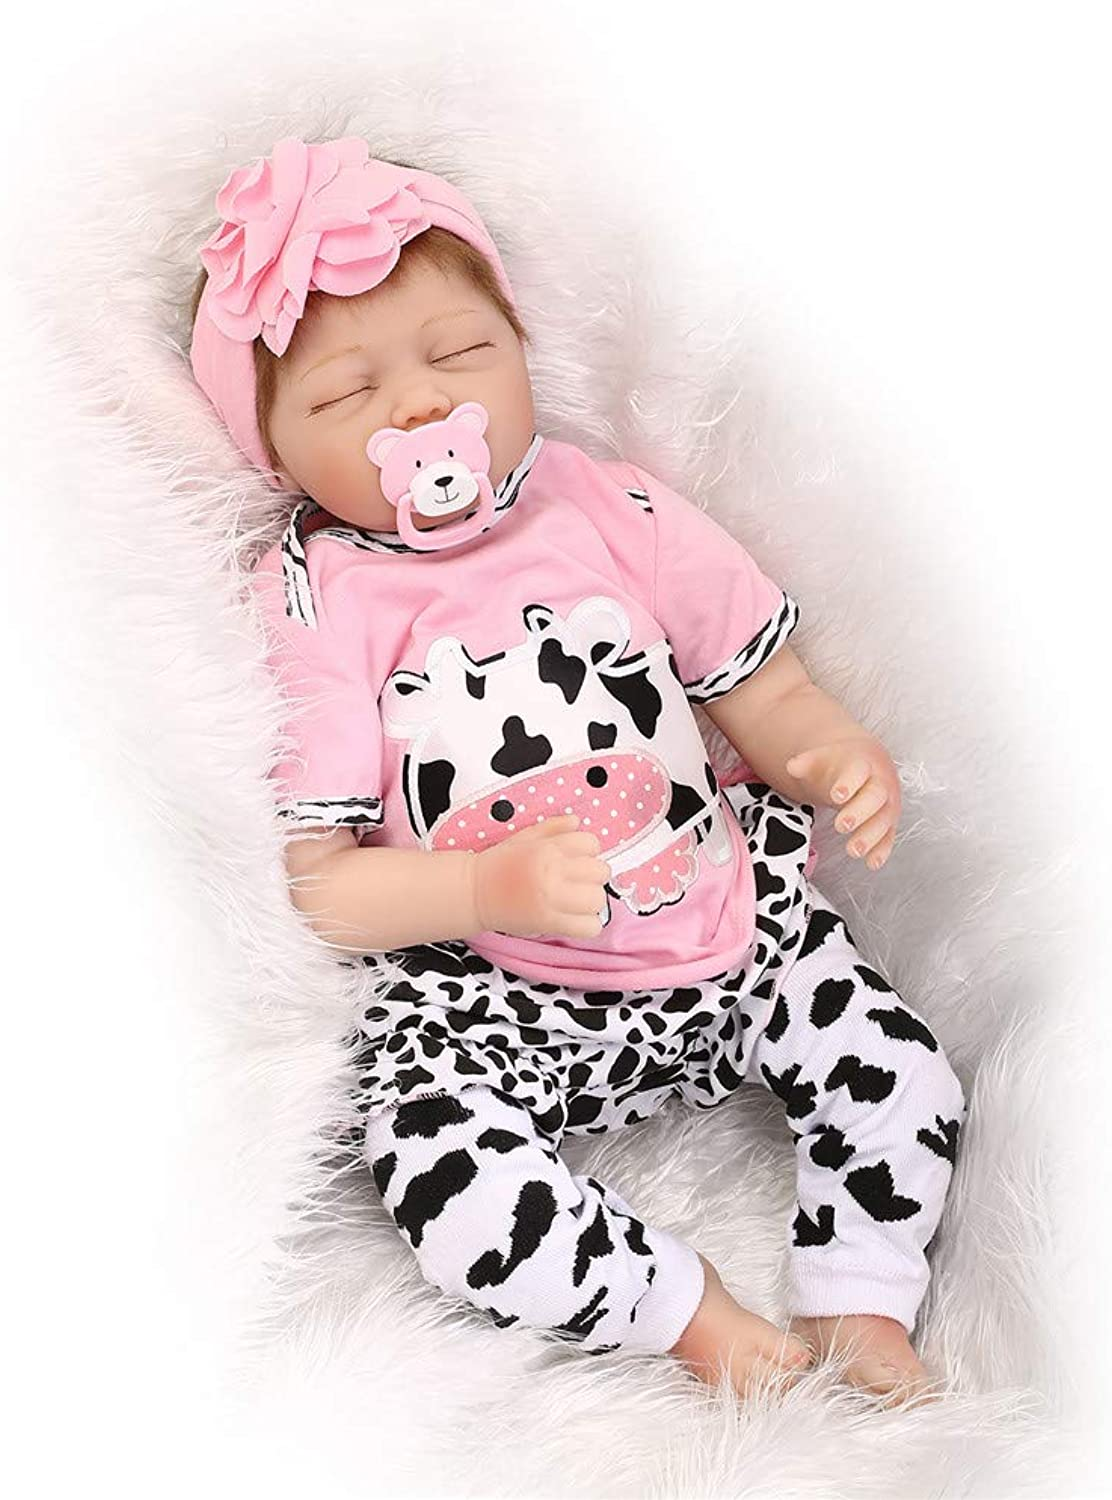 HWBB Reborn Baby Doll Handmade Realistic Reborn Doll Full Simulation Silicone Vinyl 22 inch 55cm Baby Girl Safety Tested For age 3